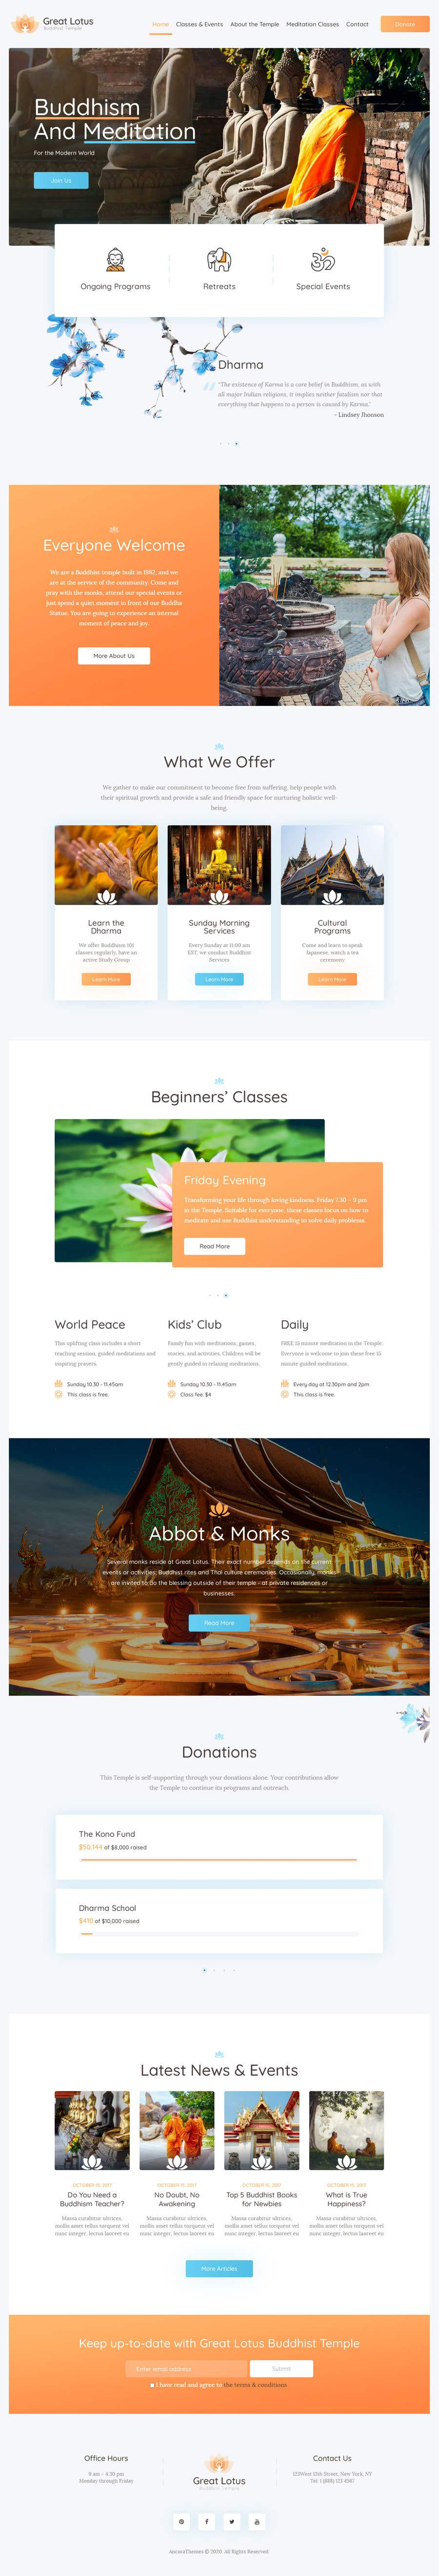 Konkurrenceindlæg #                                        4                                      for                                         A Professional Web Designer is require to design a Buddhist Charity Website